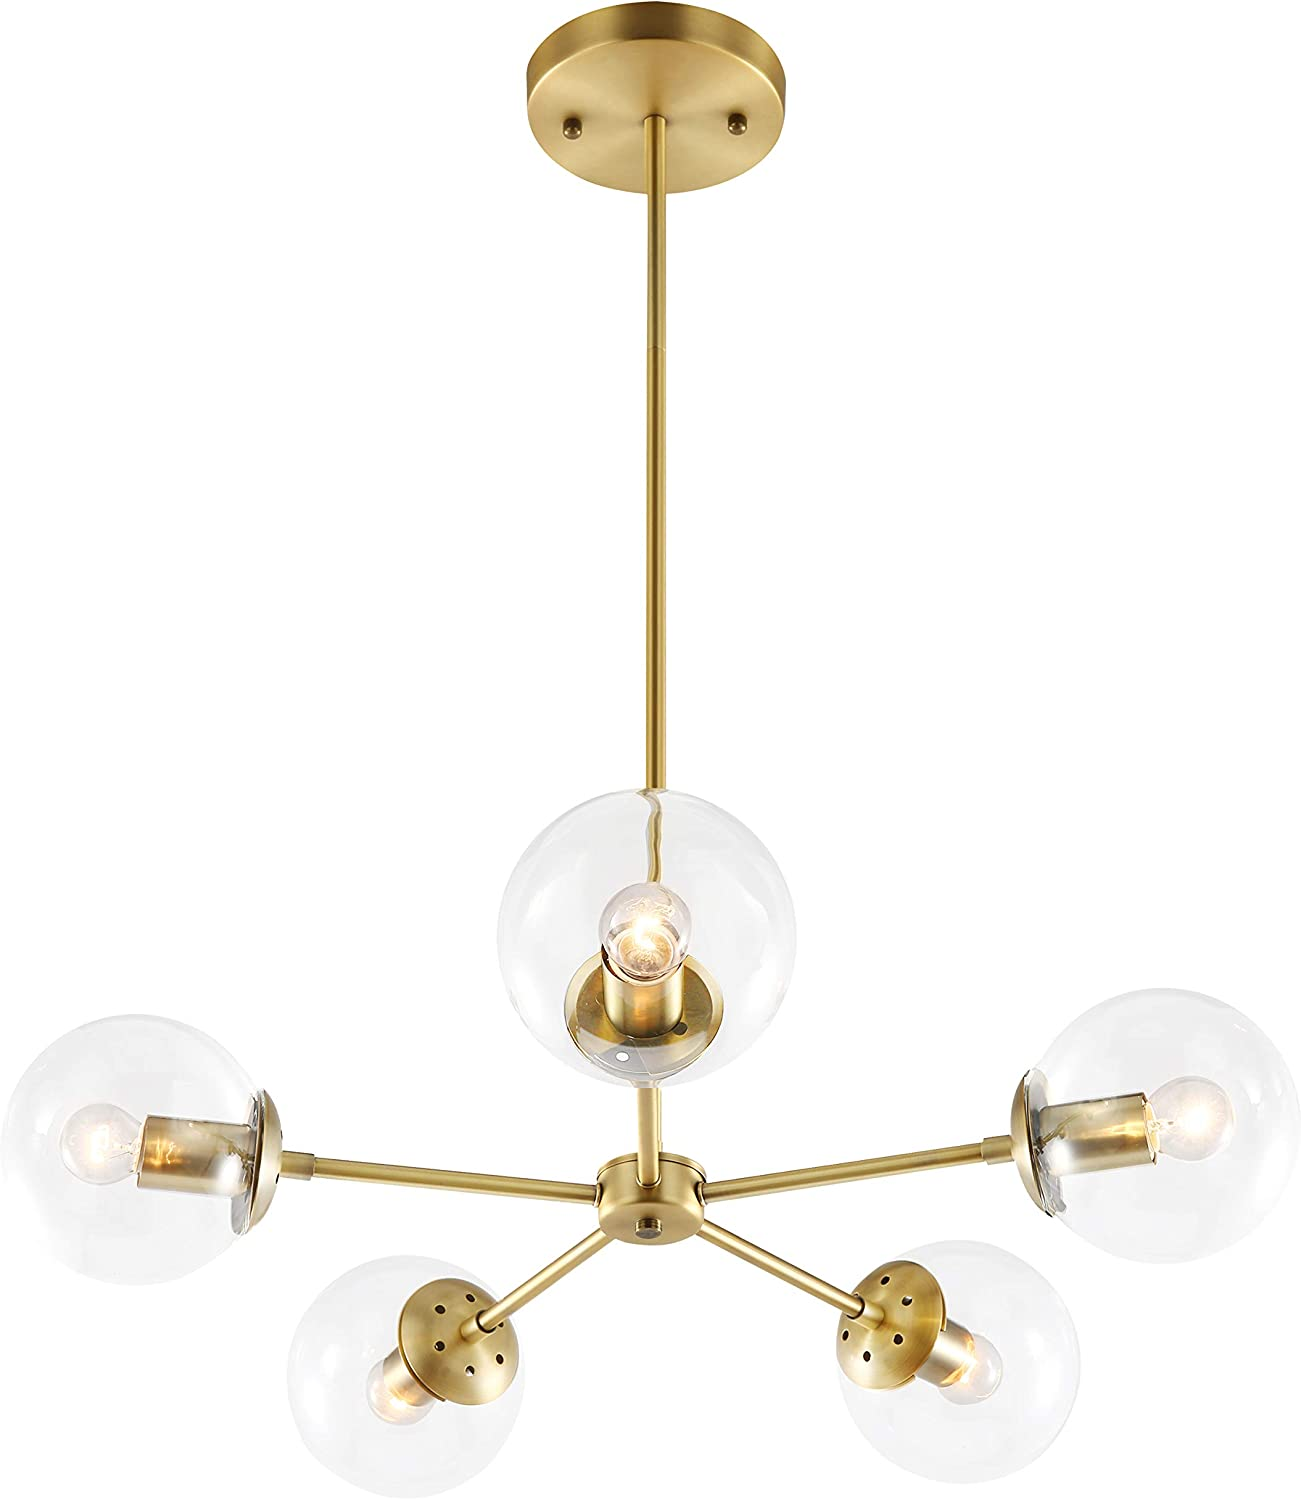 Light Society Grammercy 5-Light Chandelier Pendant, Brushed Brass with Clear Glass Globes, Classic Mid Century Modern Lighting Fixture LS-C228-BRS-CLR